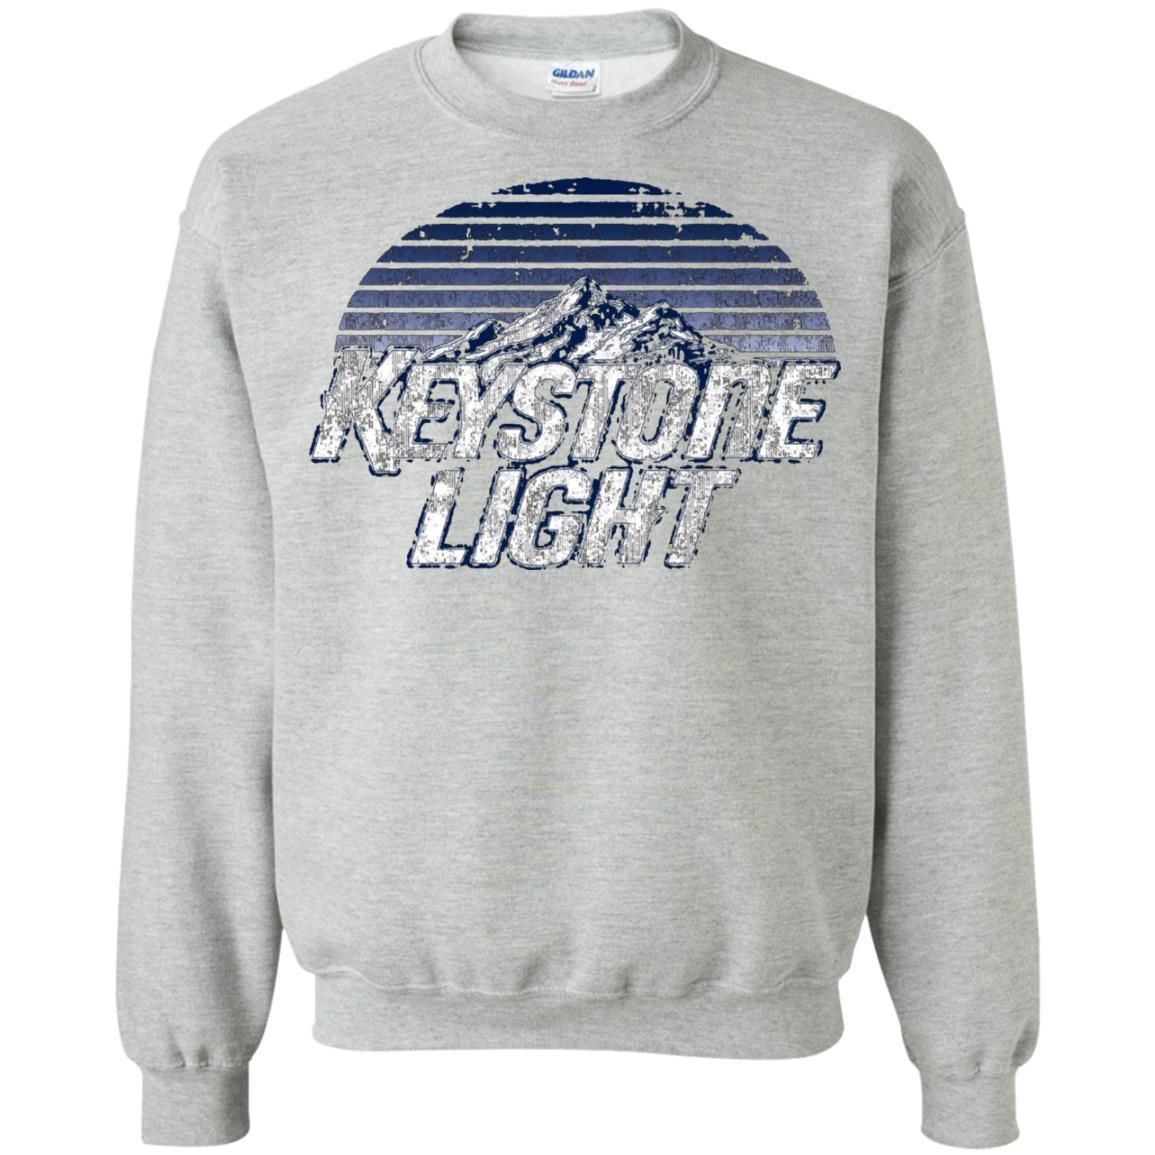 Keystone Light Beer Classic Look - Pullover Sweatshirt Sport Grey / 5XL